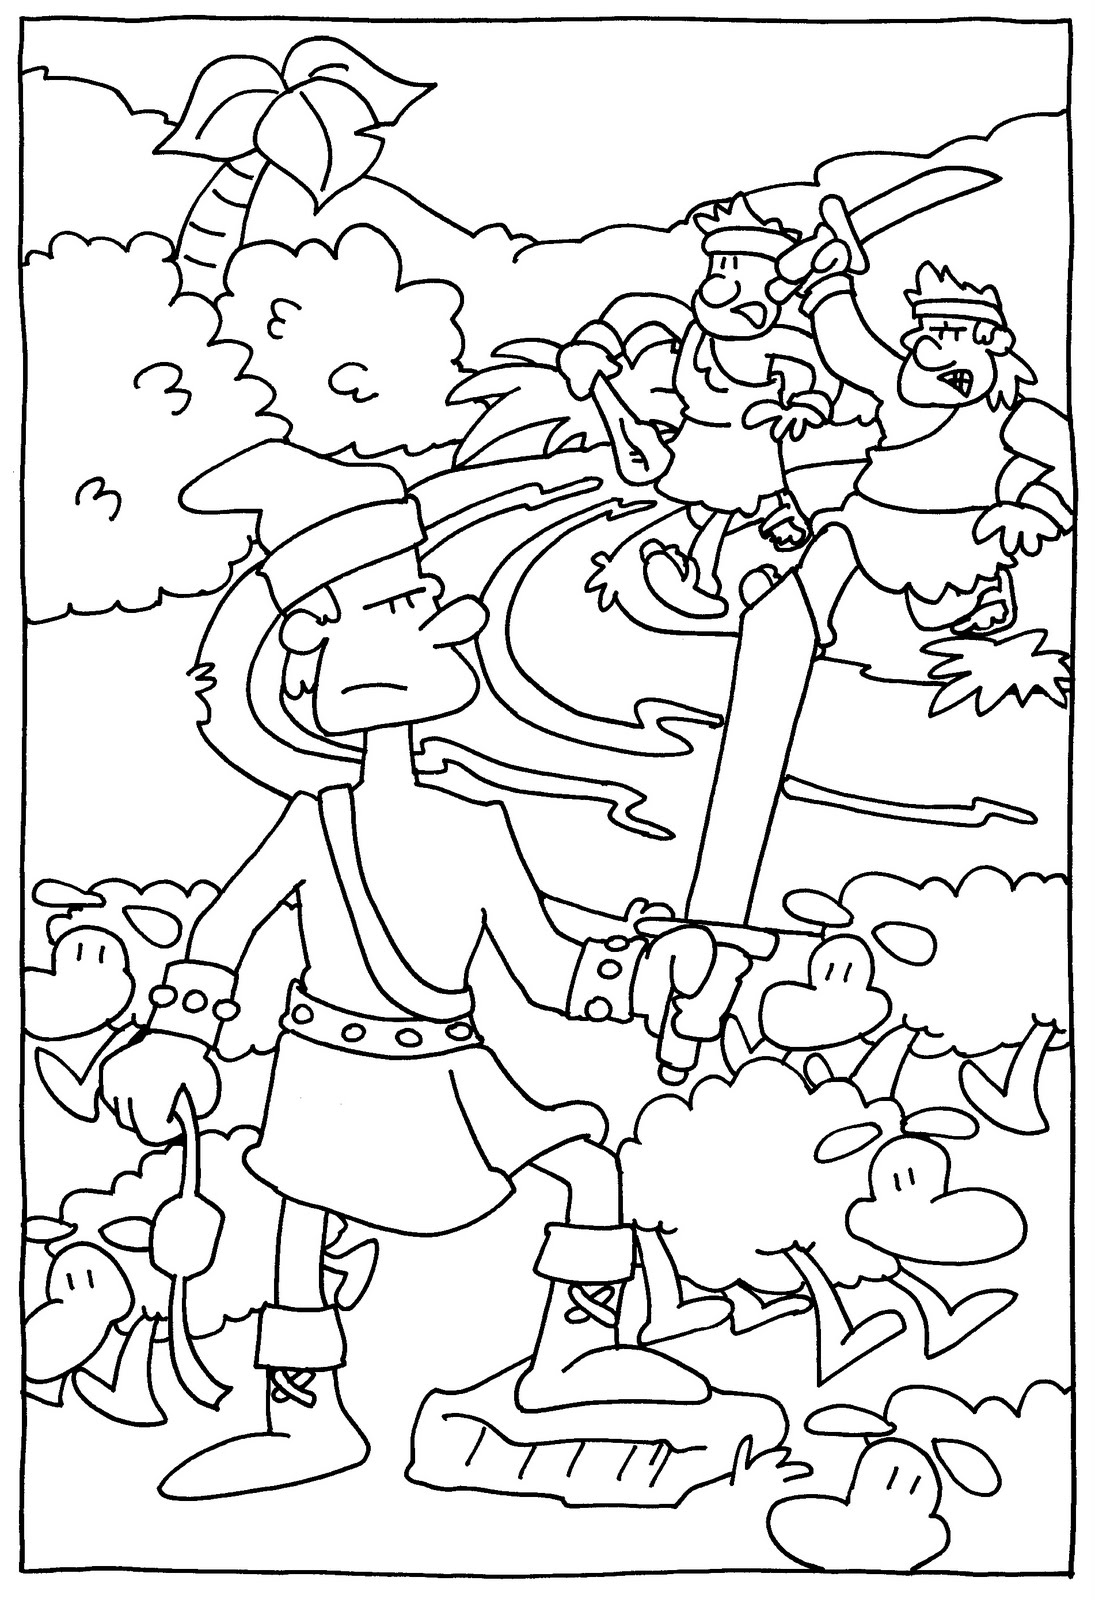 Coloring Page Mormon And The Plates Coloring Pages Lds Coloring Page